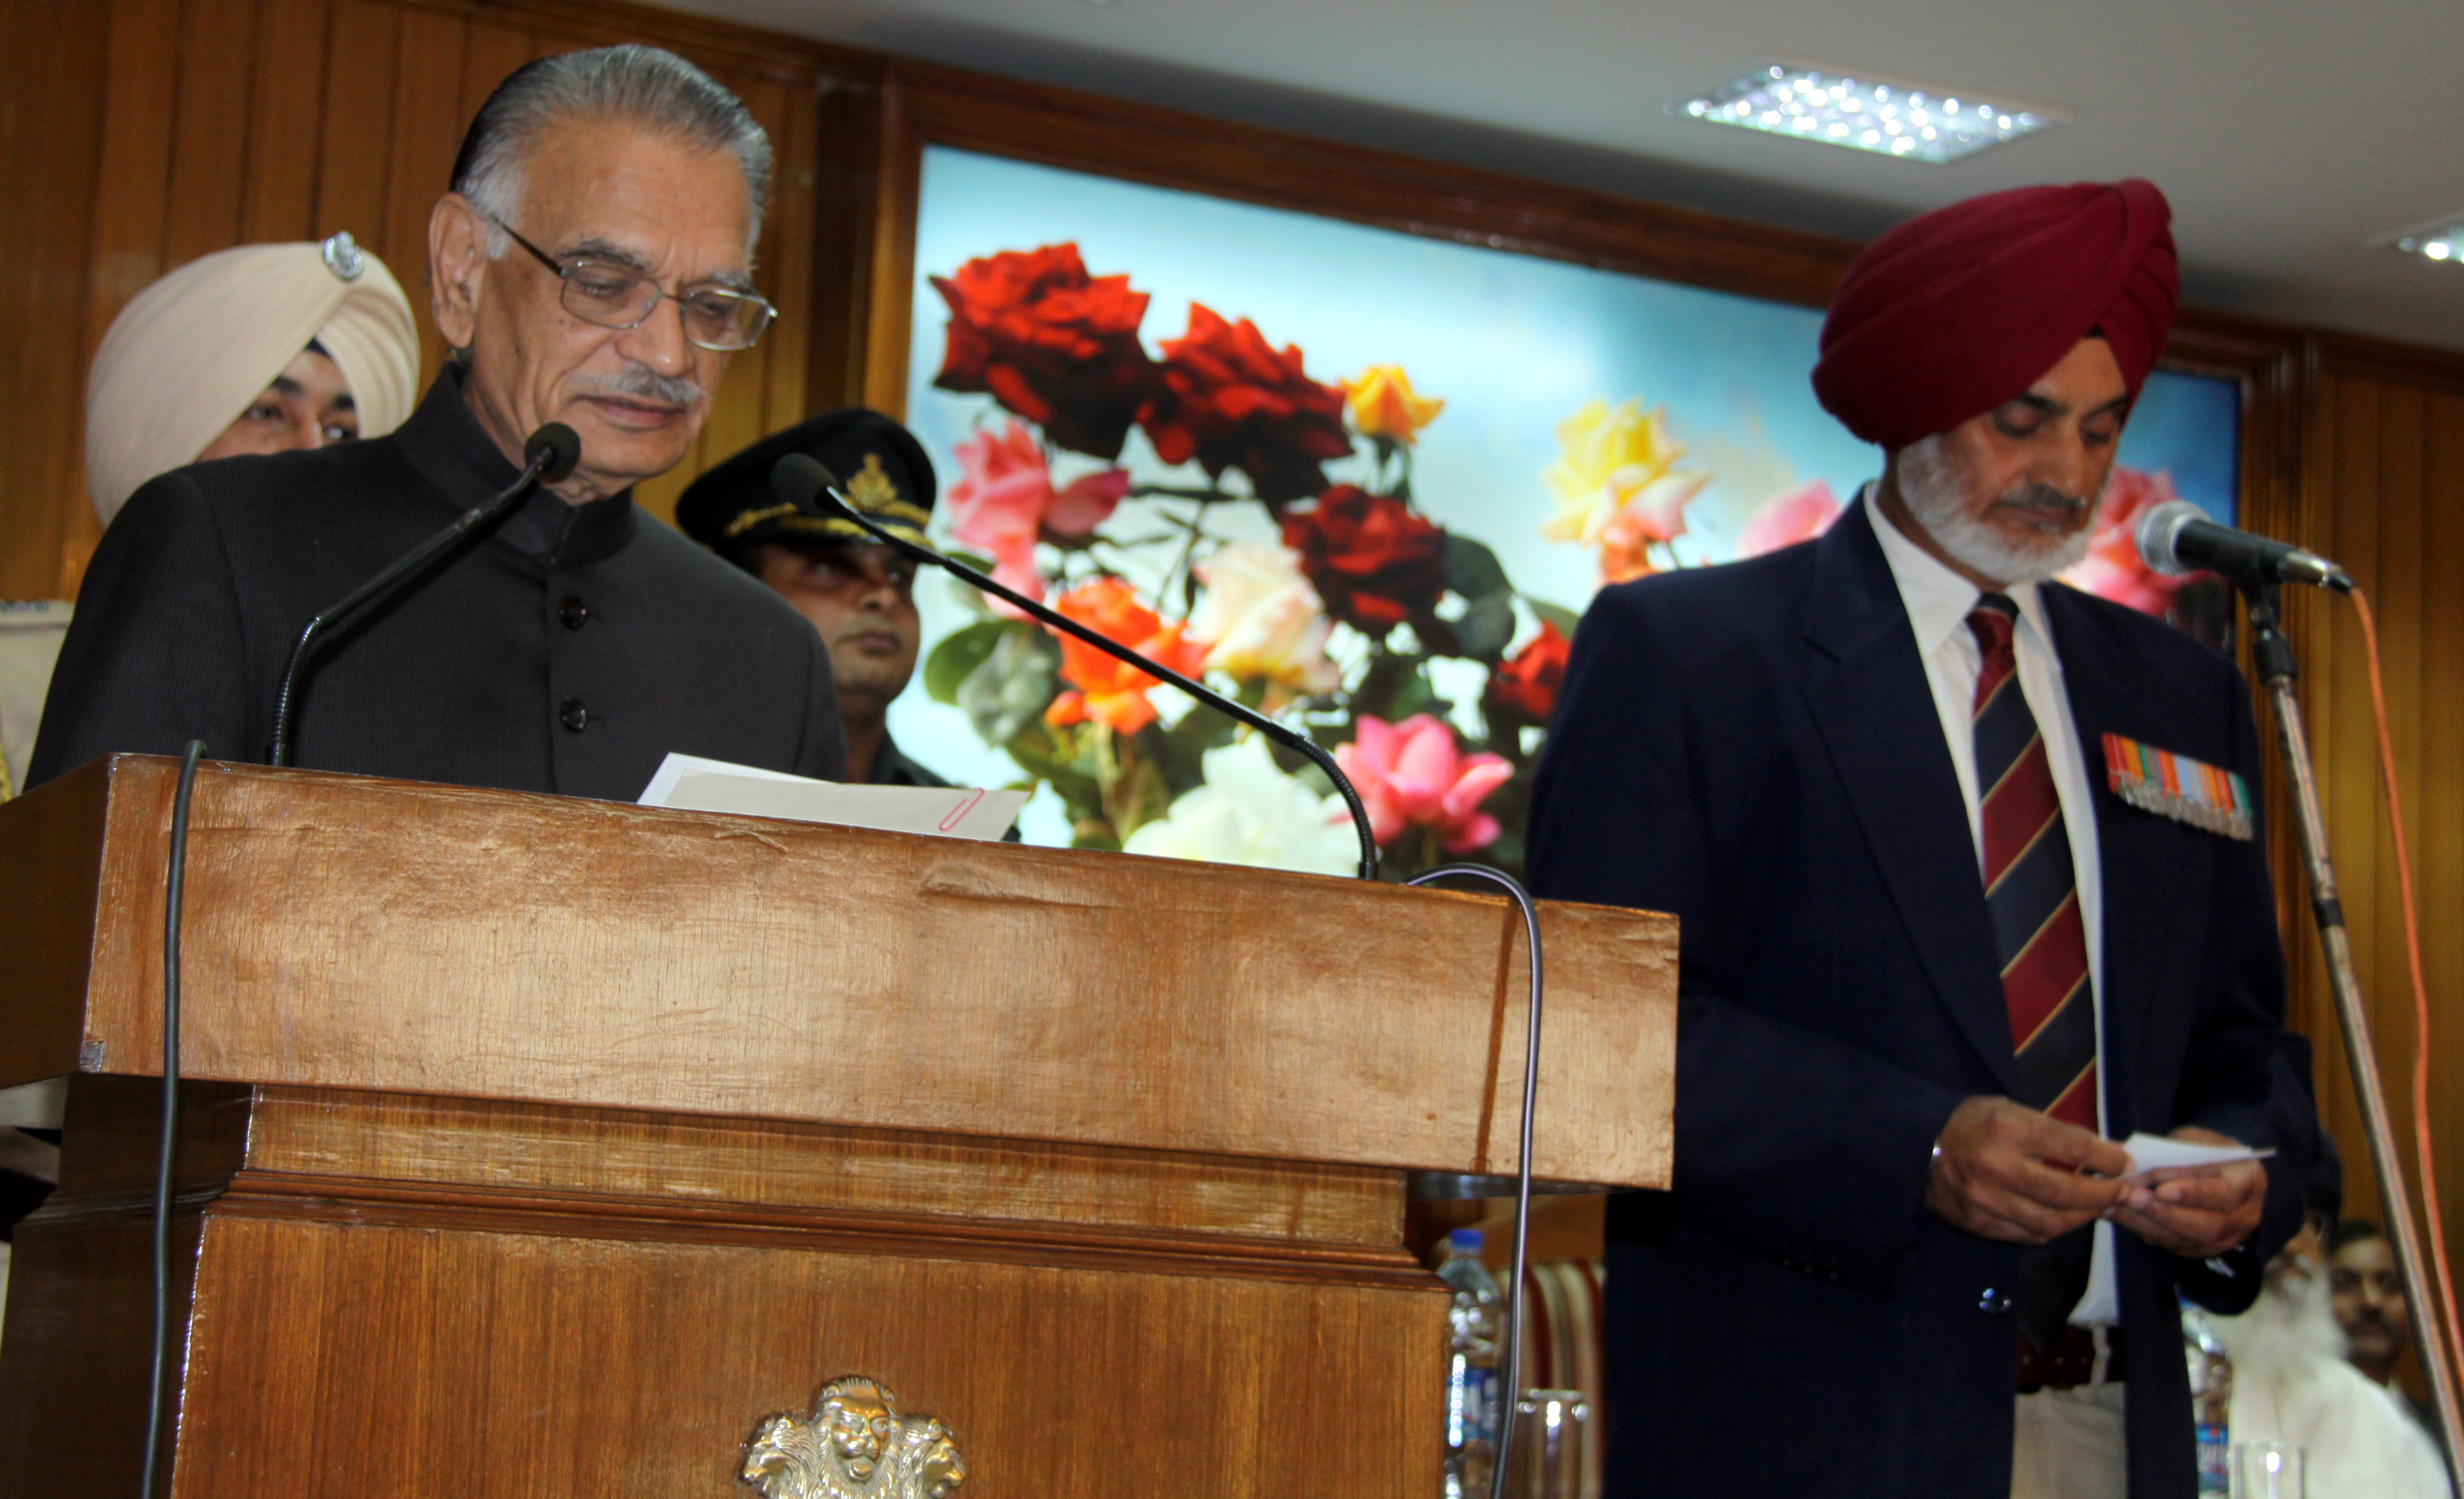 The Punjab Governor and Administrator, Union Territory, Chandigarh, Mr. Shivraj V. Patil administering the oath of office, secrecy and allegiance to Constitution of India to the newly appointed Chairman of the Punjab Public Service Commission (PPSC) Lt. Gen. (Retd.) Tejwant Singh Gill at Punjab Raj Bhavan Chandigarh on 02.09.2014.